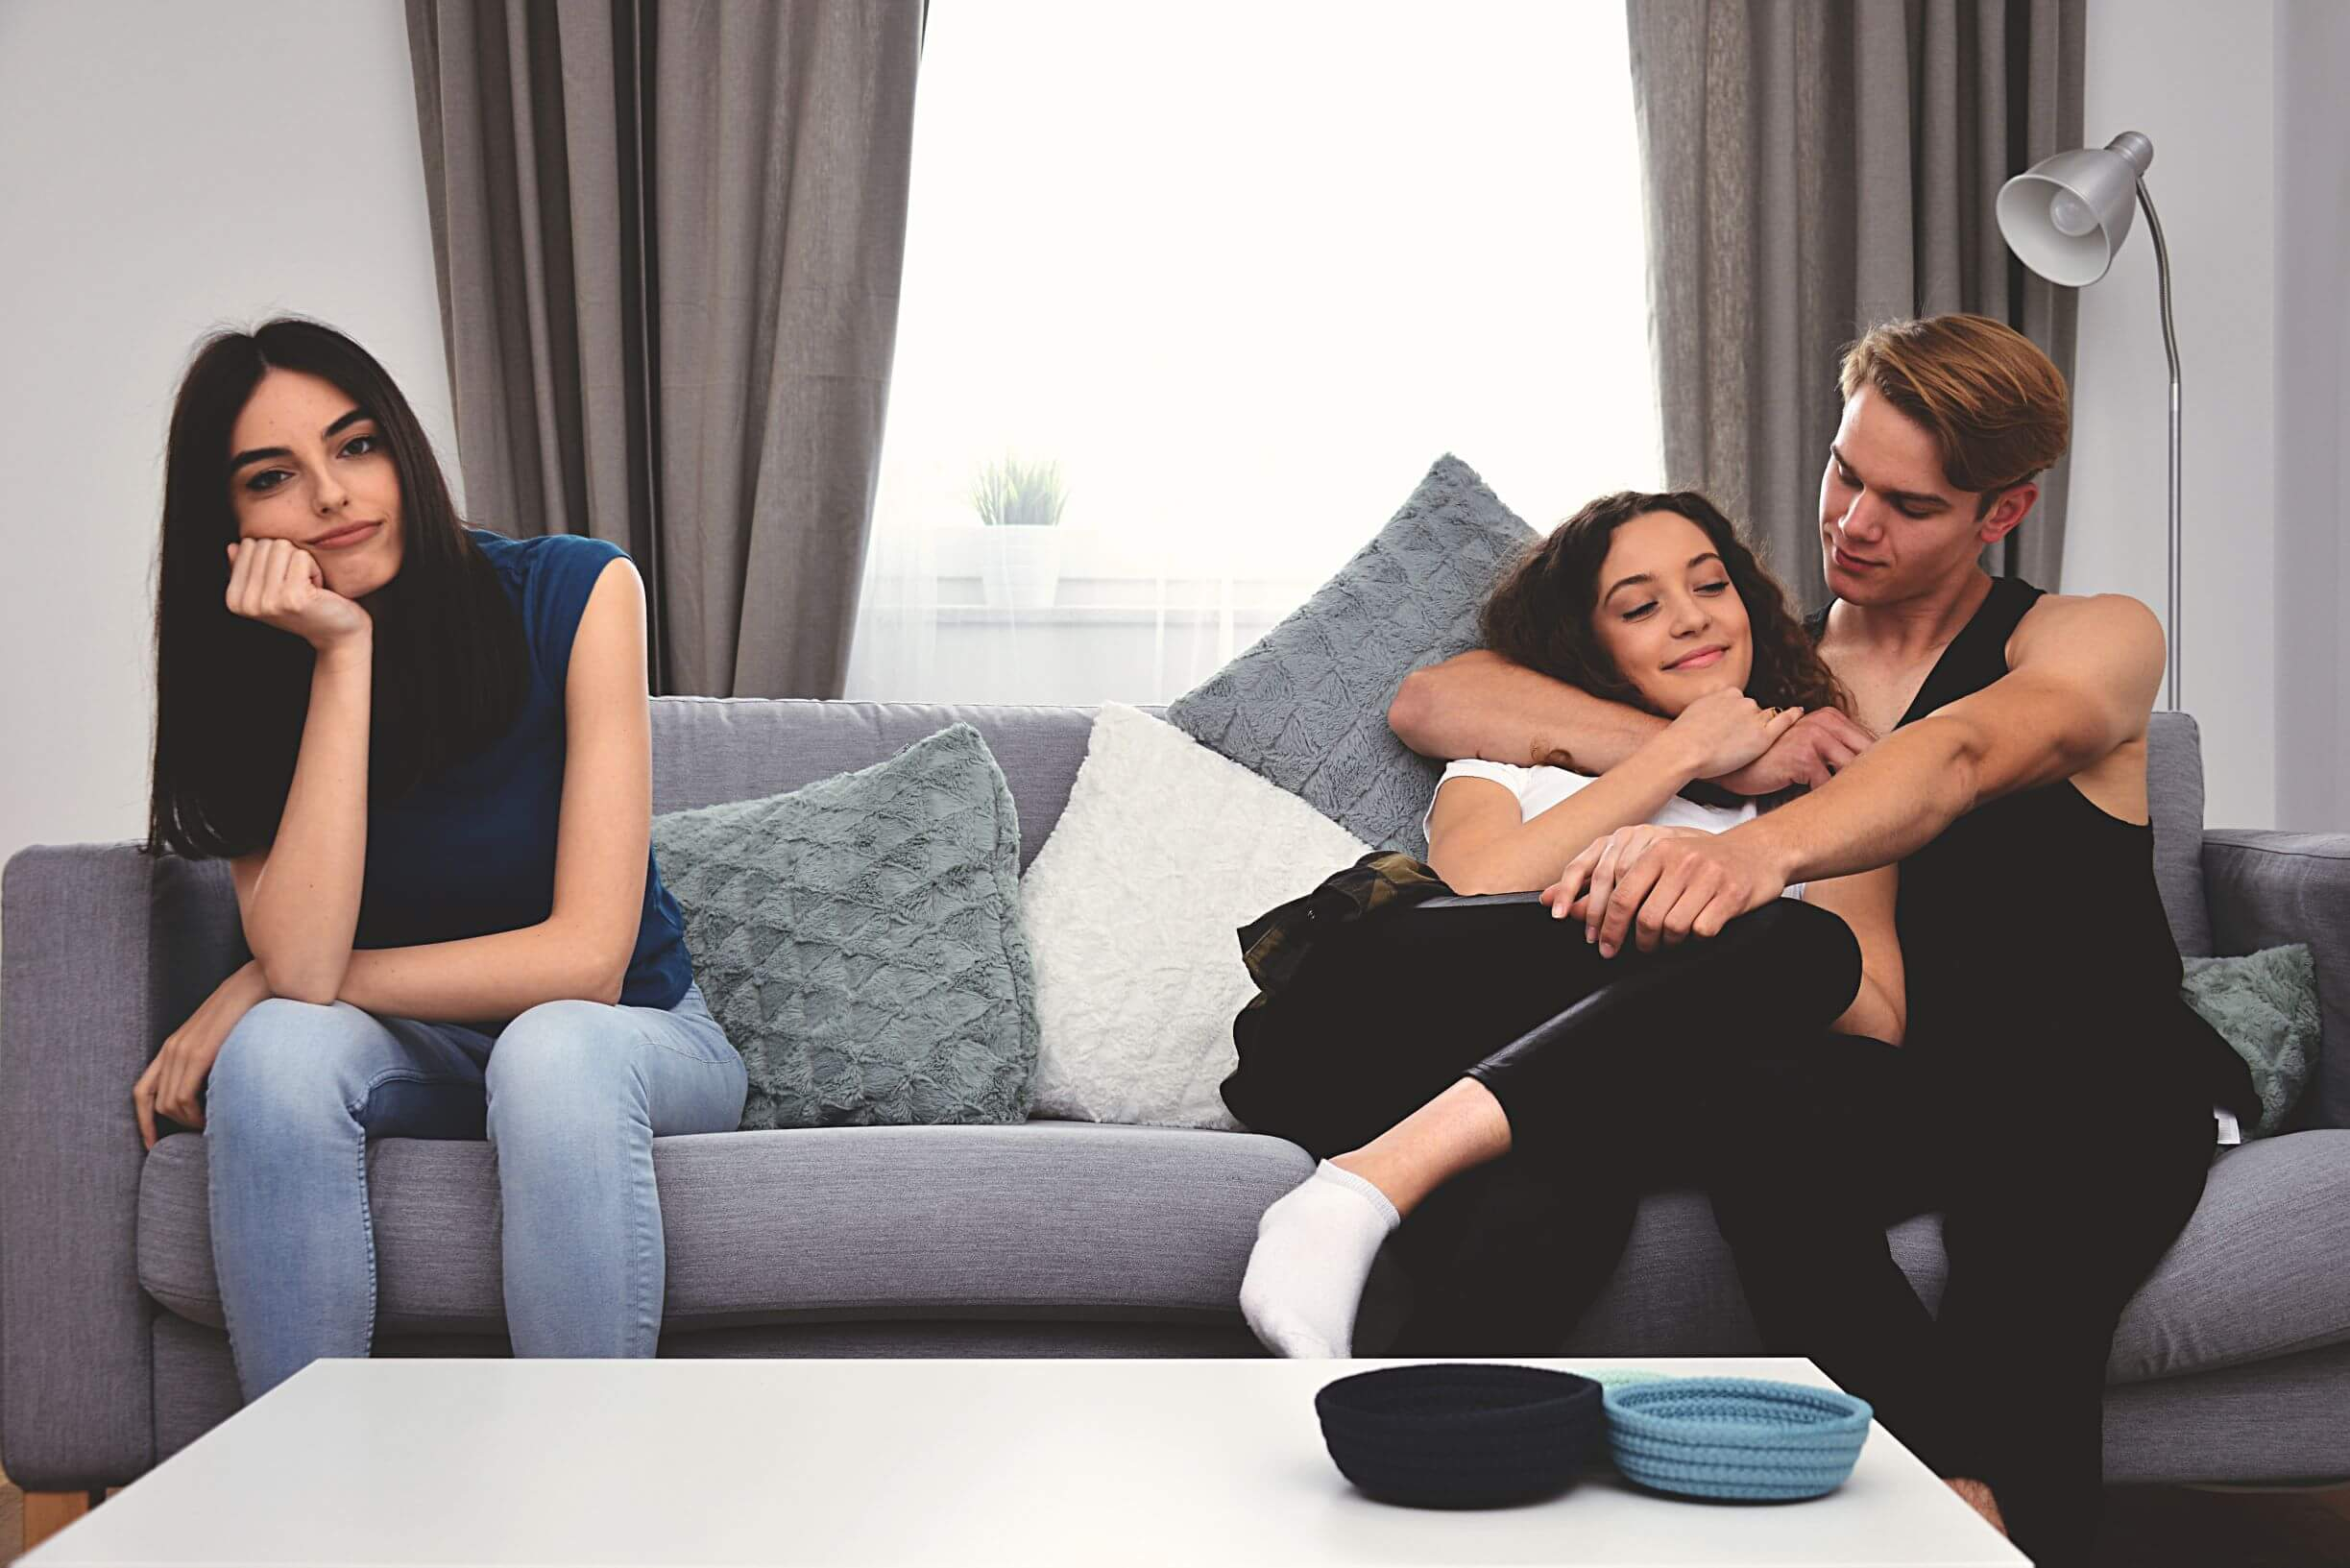 A teenage couple cuddles on a couch while their friend sits at the other end alone and looks unhappy